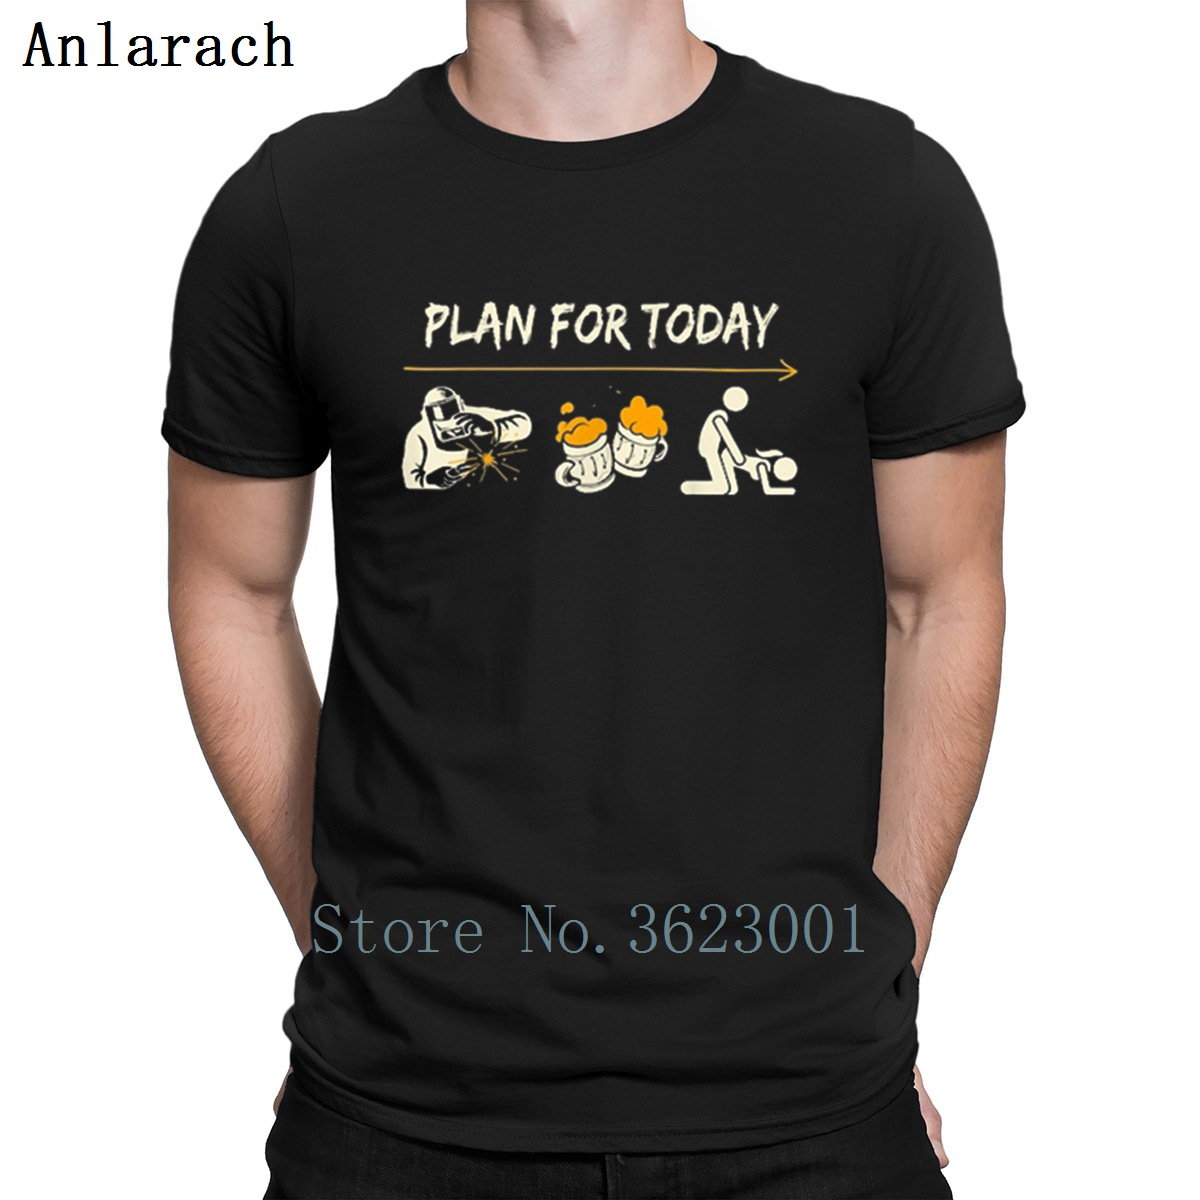 Plan For Today Welder Beer Sex Funny Shirt T Shirt Famous Pictures Tee Shirt Spring Unique S-Xxxl Customized Comfortable Shirt